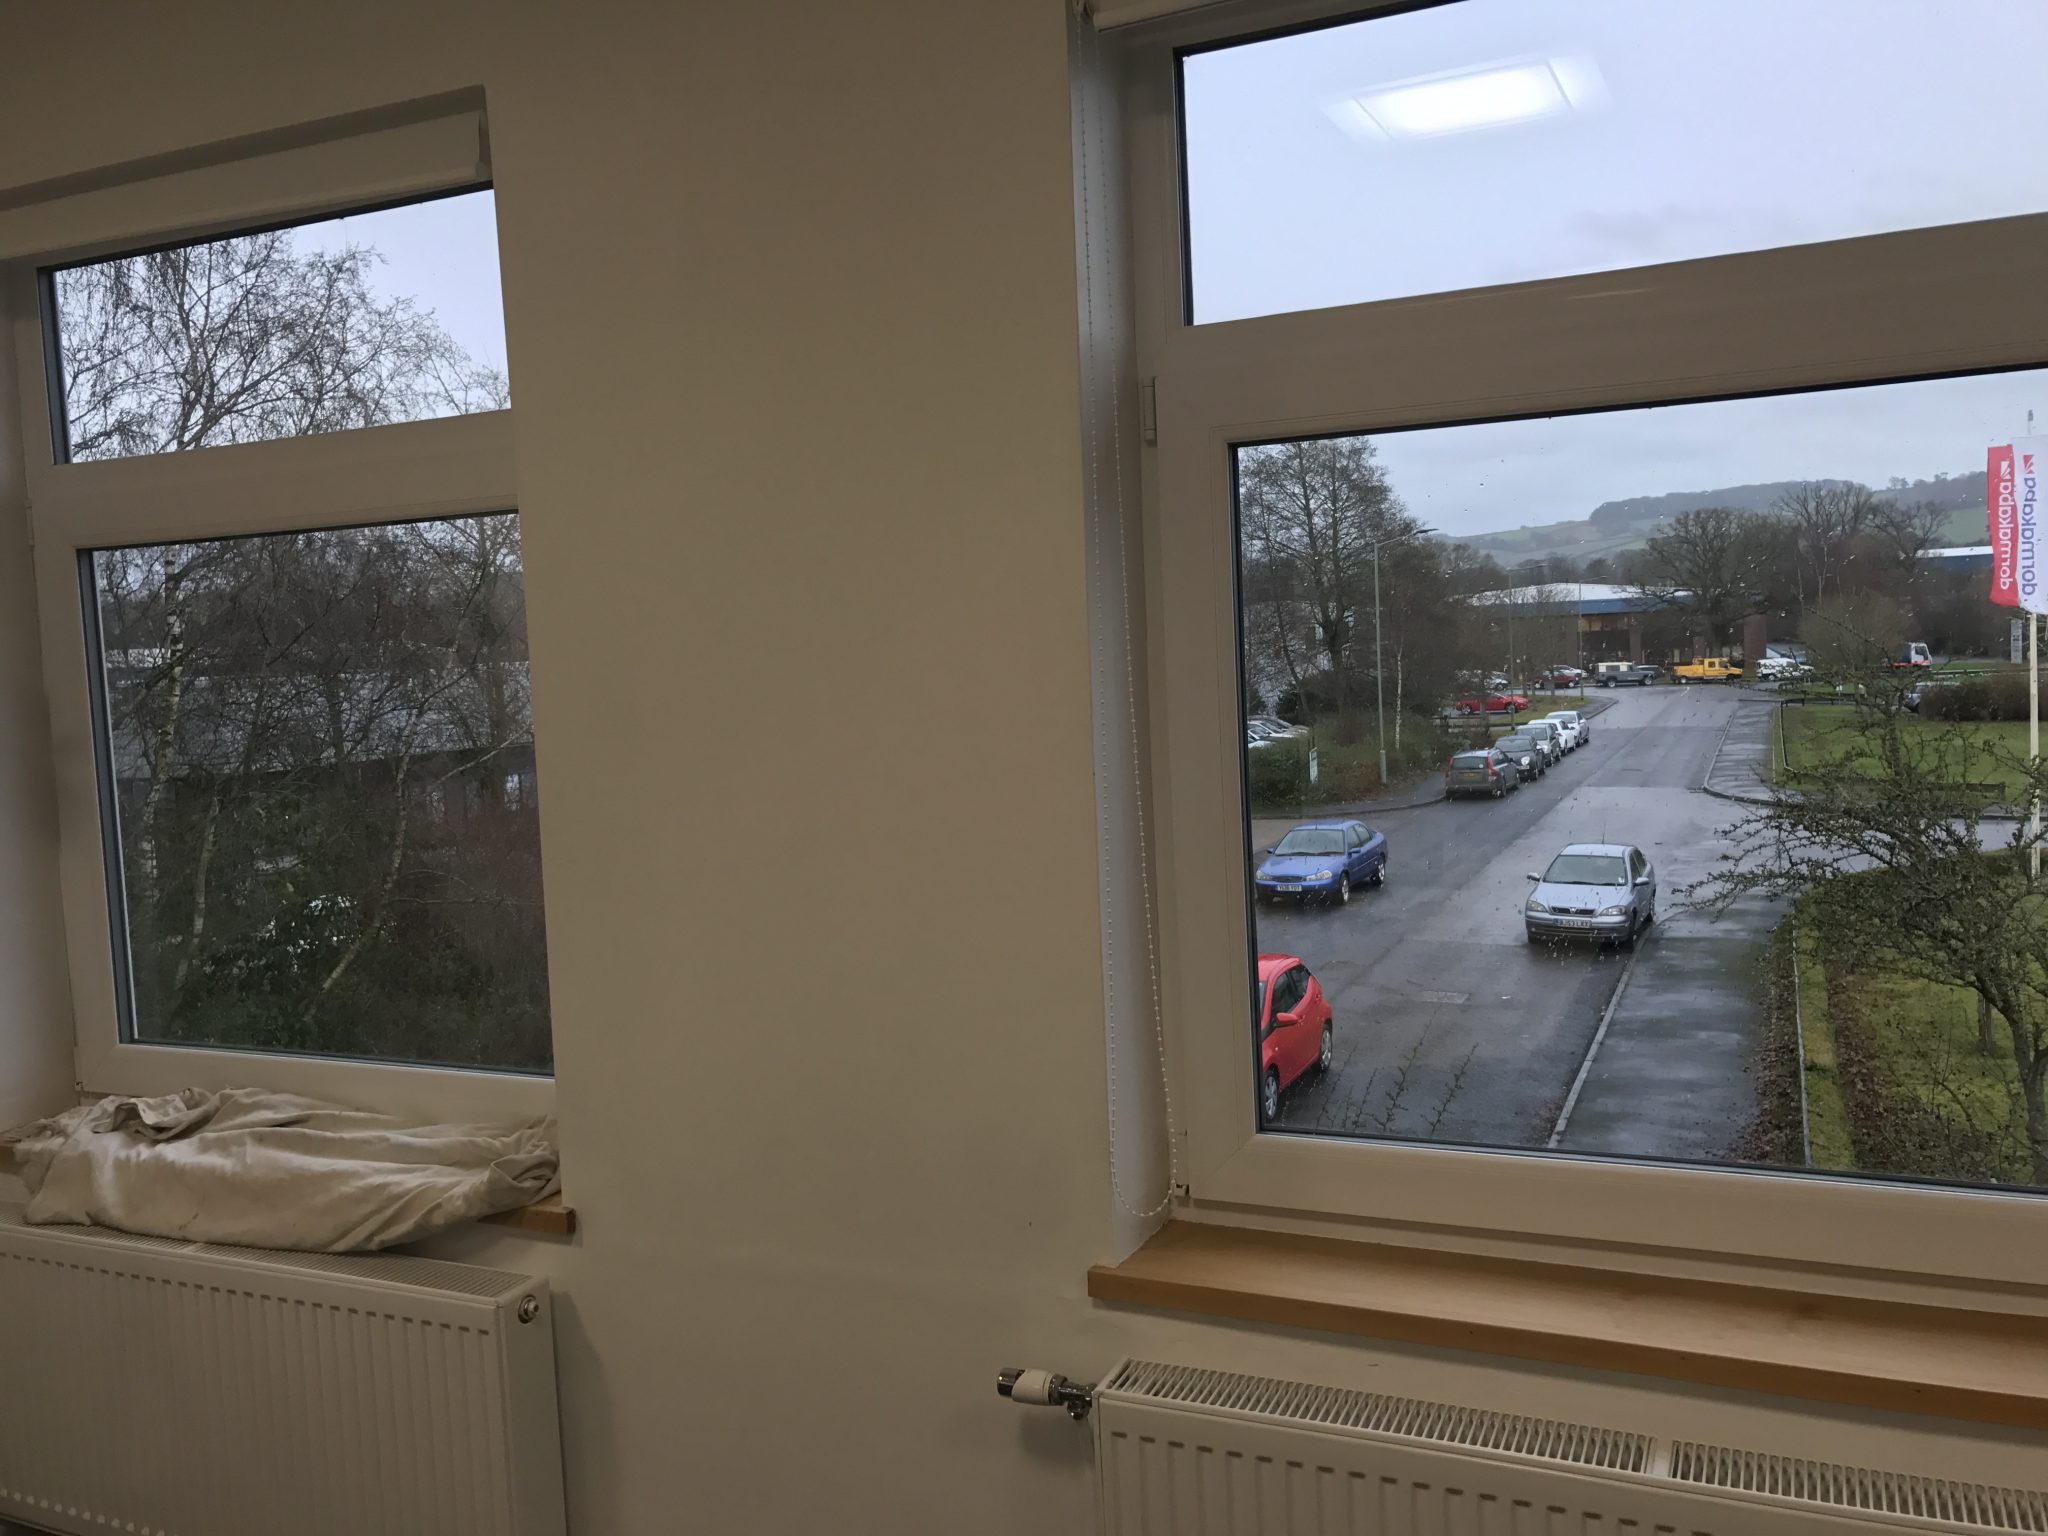 Silver 50 Window Film Upstairs Windows Internal View